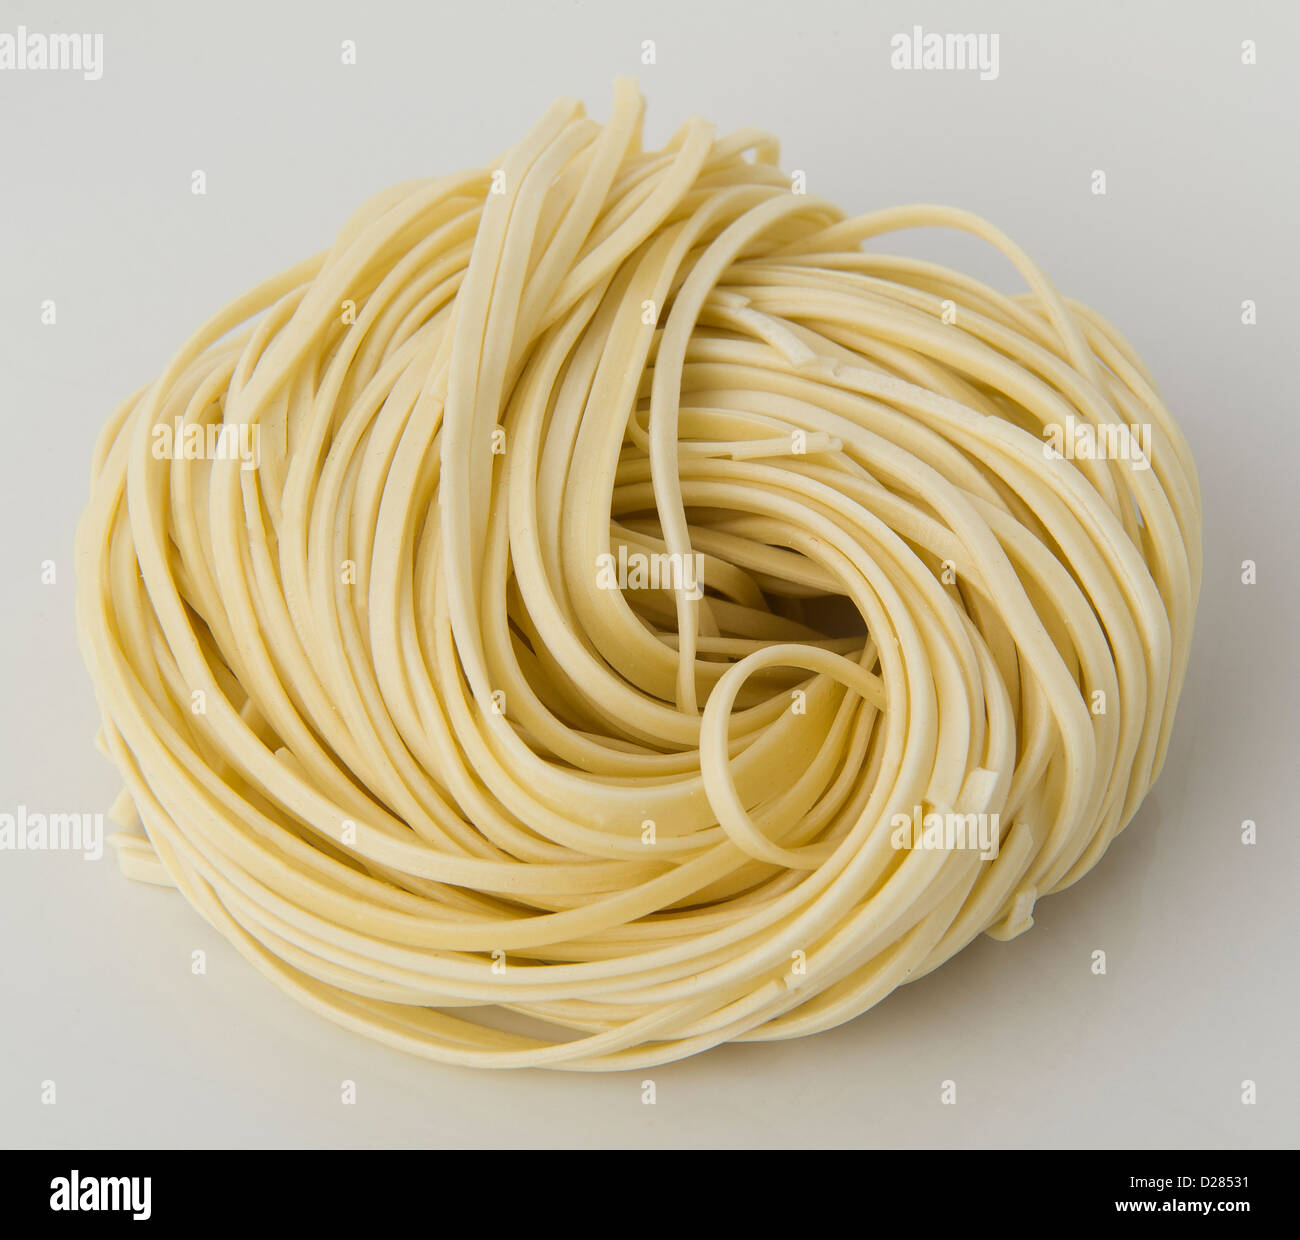 dried noodles - Stock Image